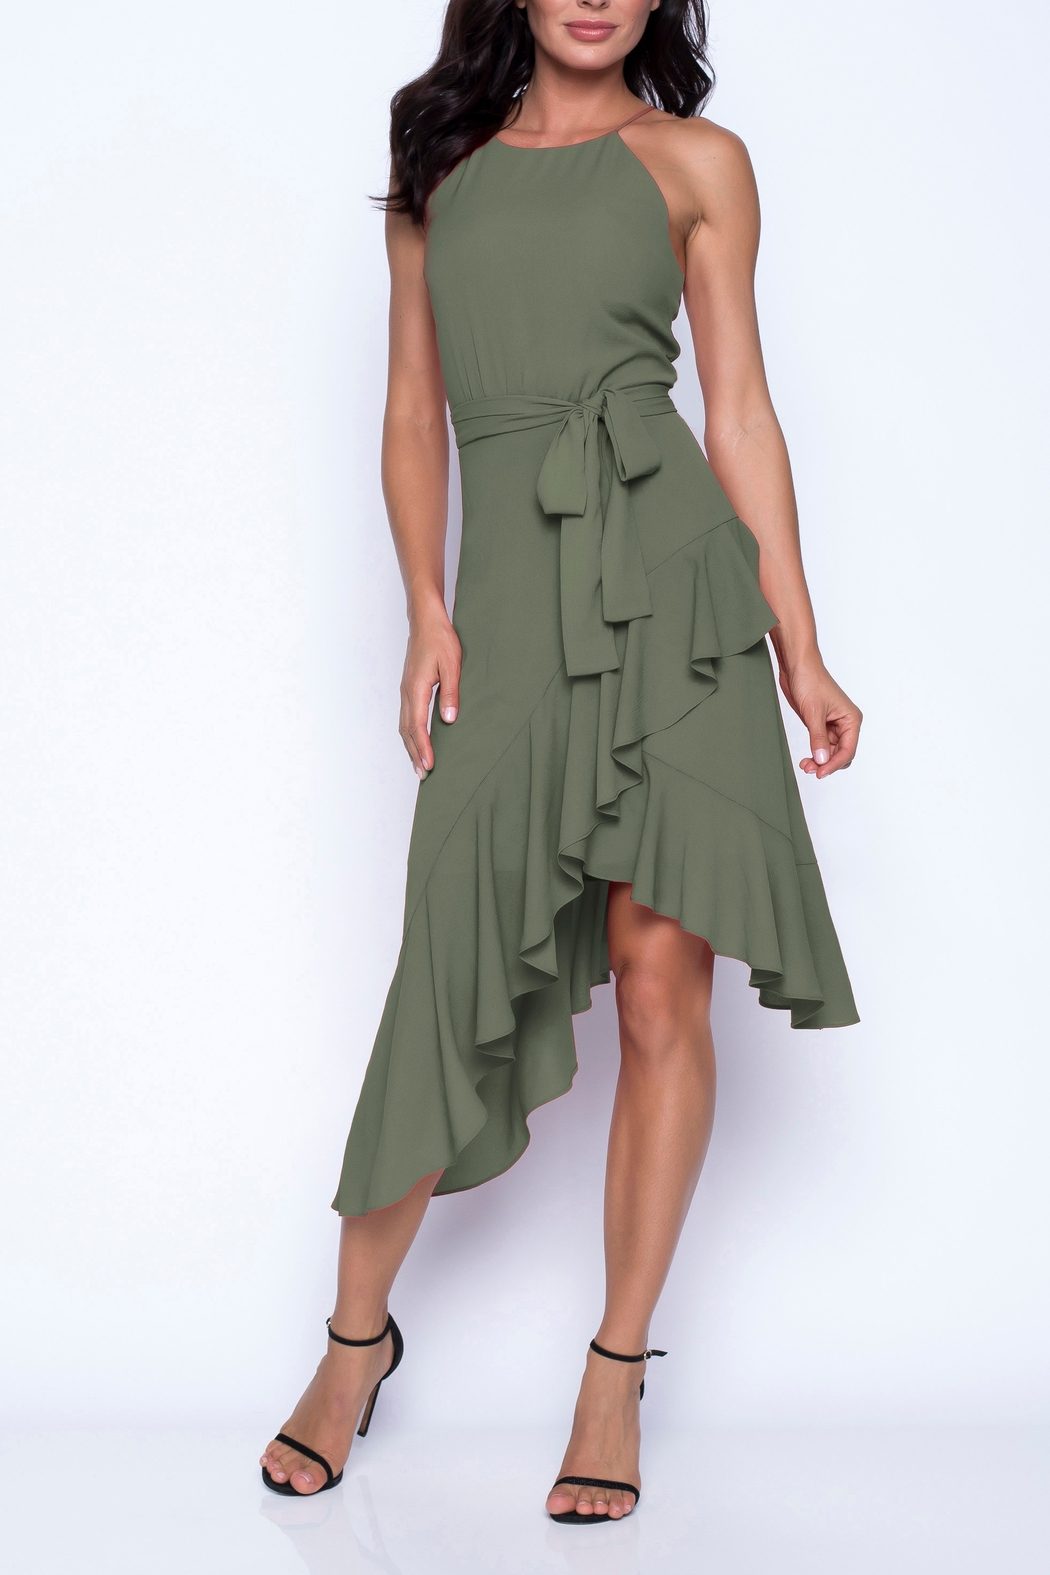 Frank Lyman Summer Crepe Knit Woven Dress - Front Cropped Image